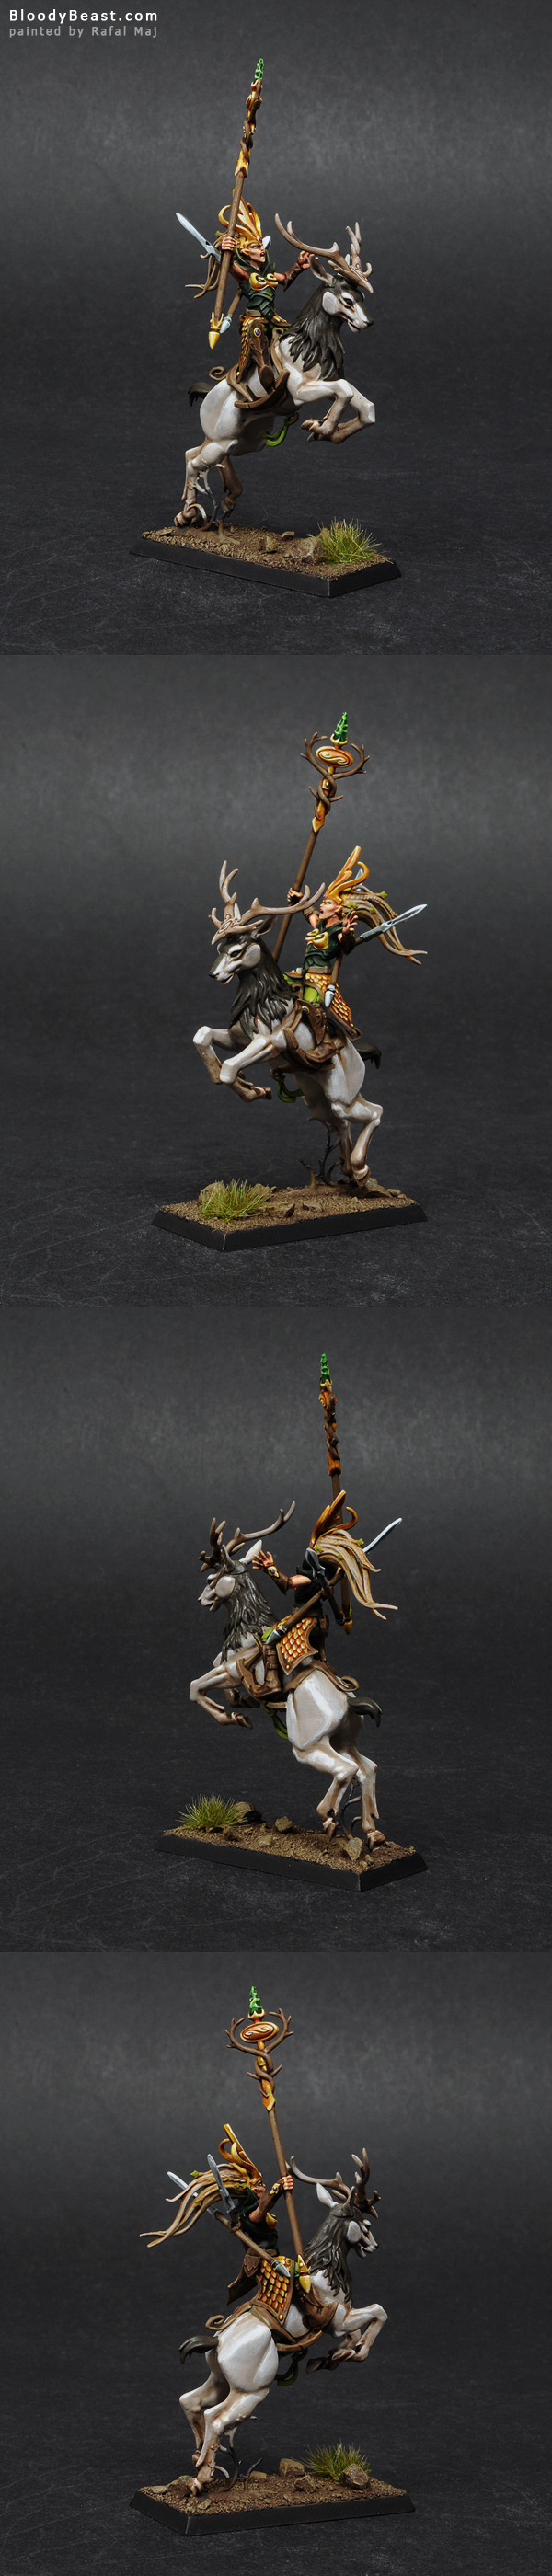 Wood Elf Sister of the Thorn painted by Rafal Maj (BloodyBeast.com)